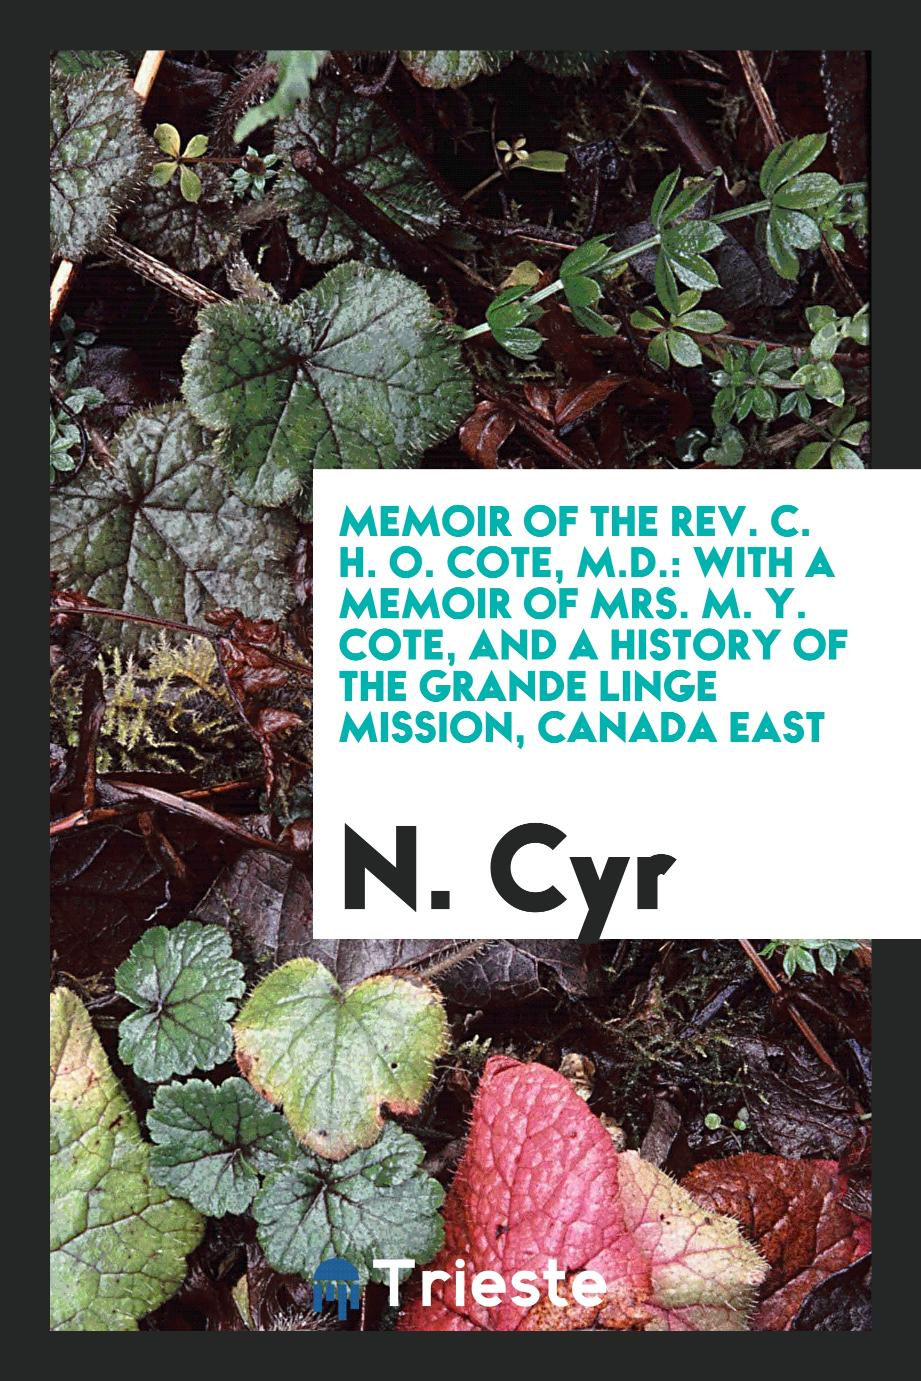 Memoir of the Rev. C. H. O. Cote, M.D.: With a Memoir of Mrs. M. Y. Cote, and a History of the Grande Linge Mission, Canada East